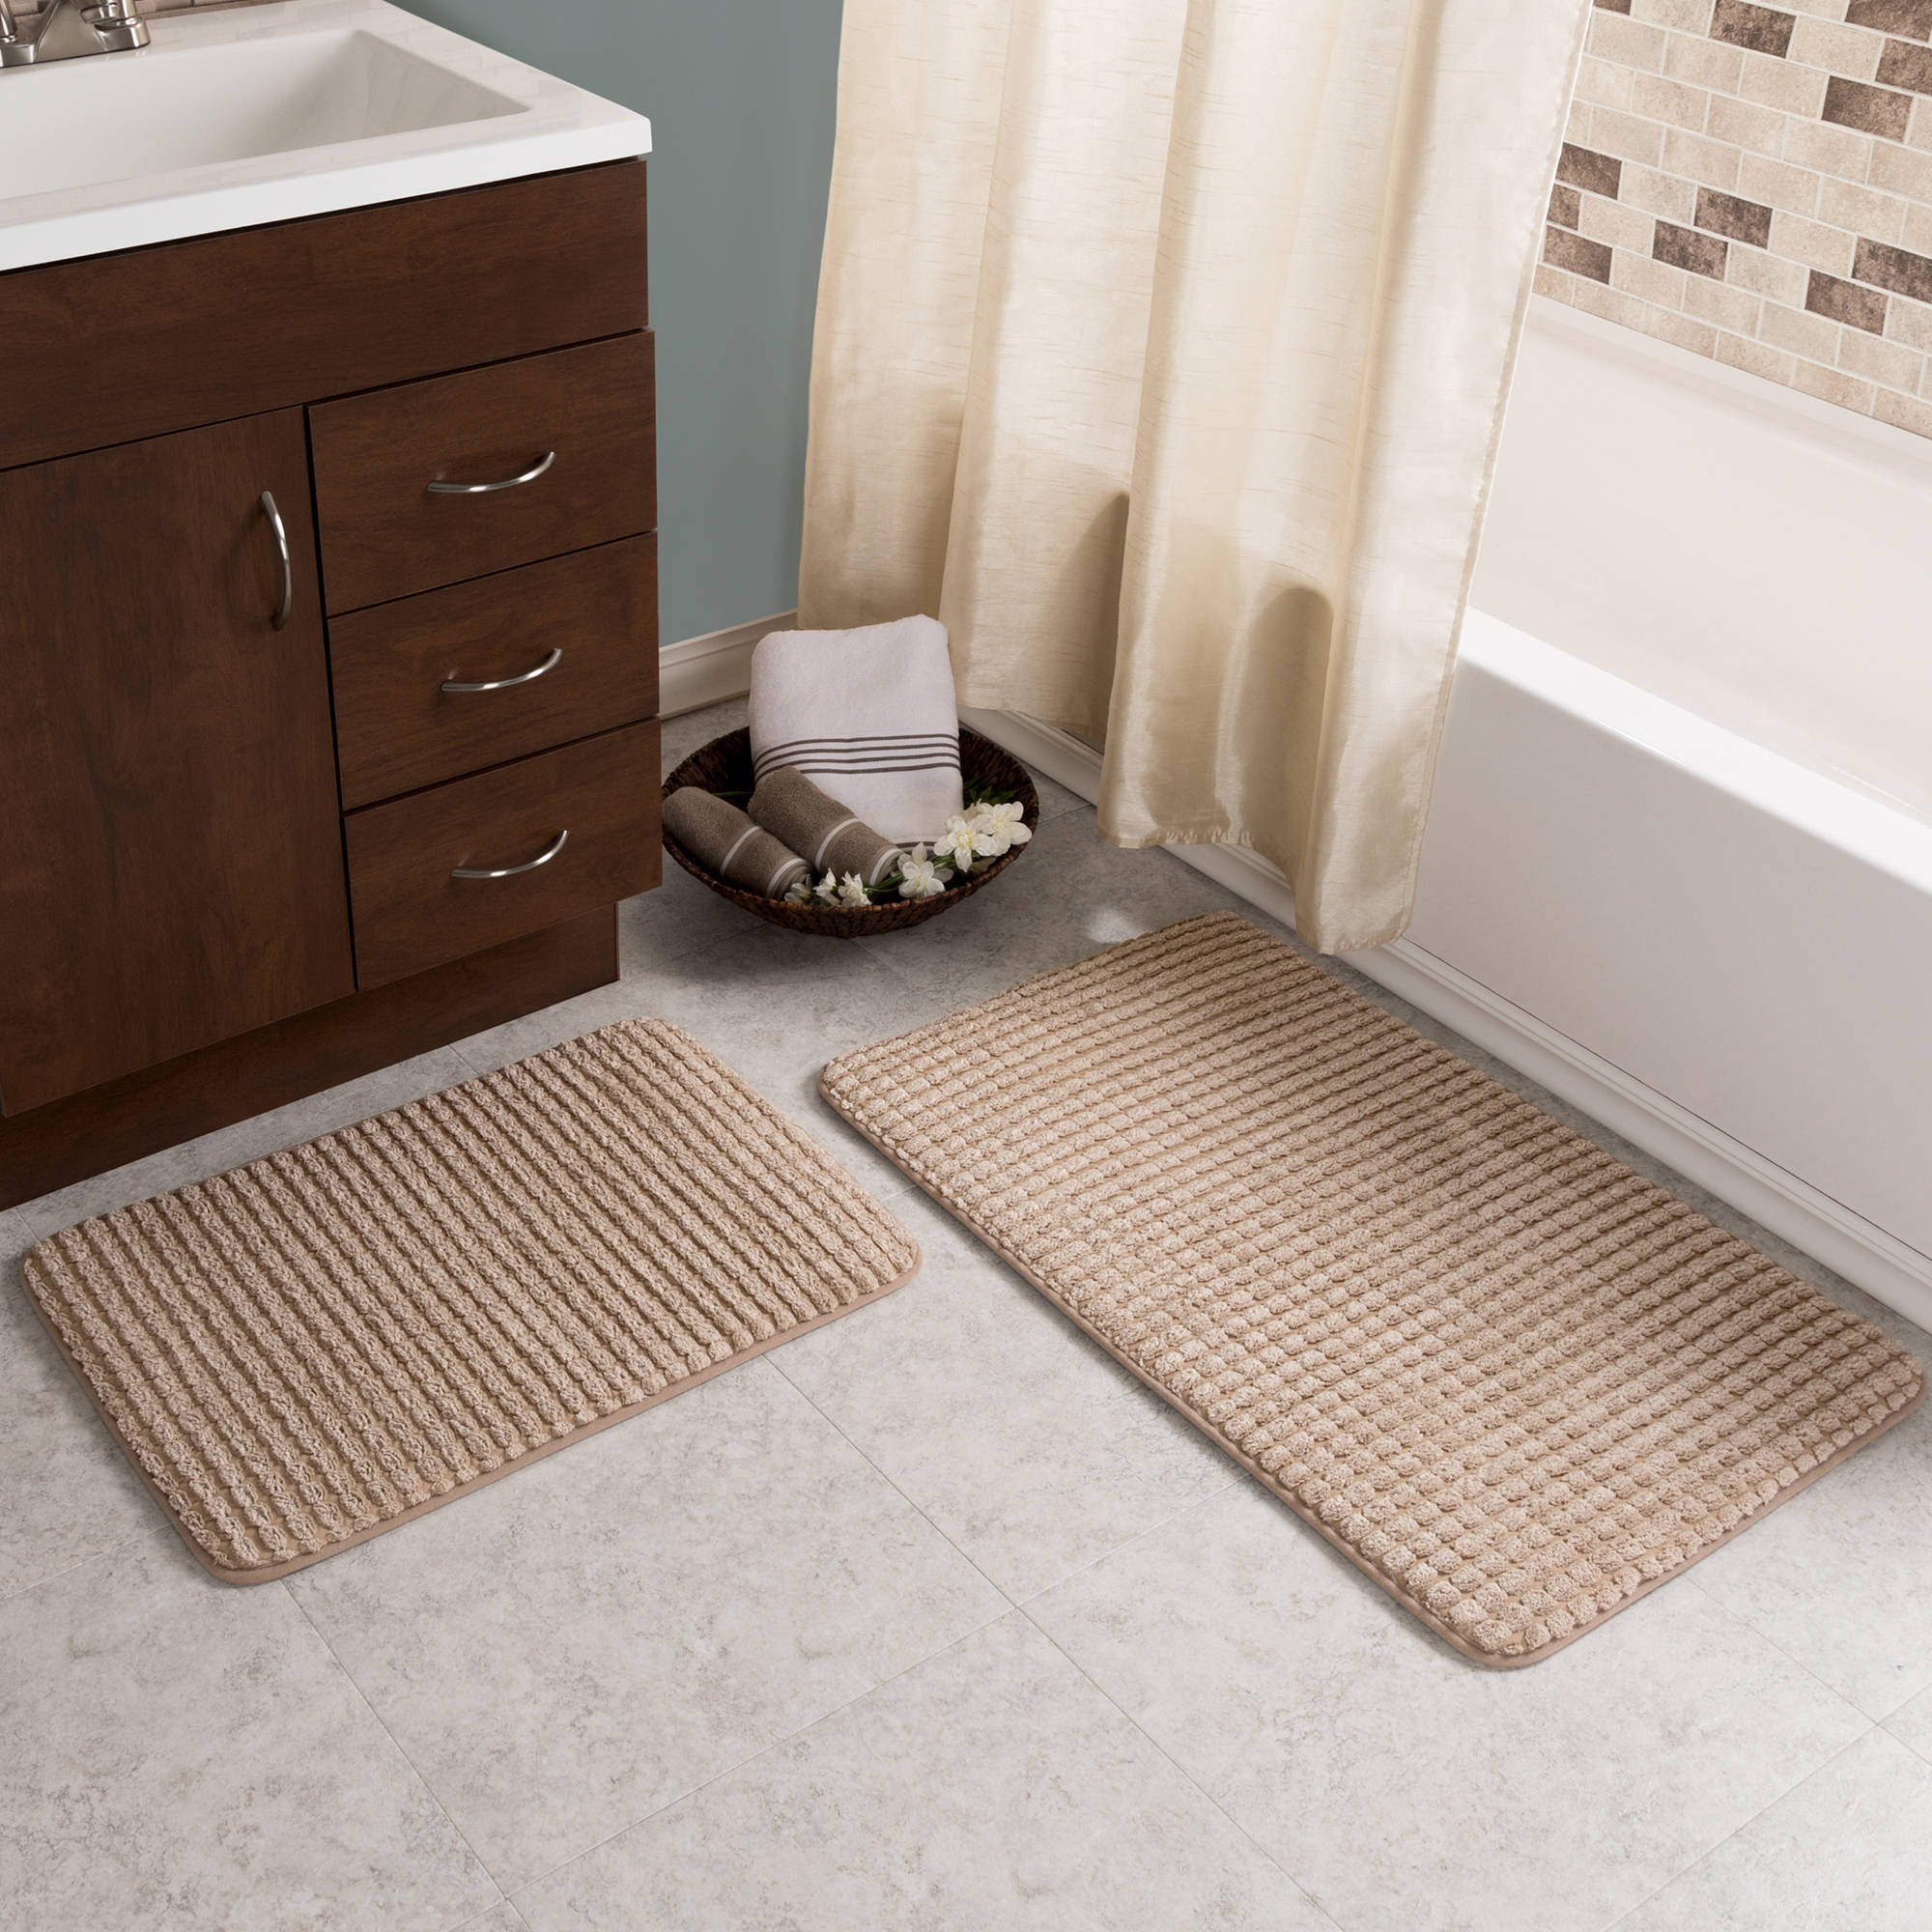 2 pc Memory Foam Bath Mat Set by Somerset Home - Woven Jacquard Fleece - Taupe